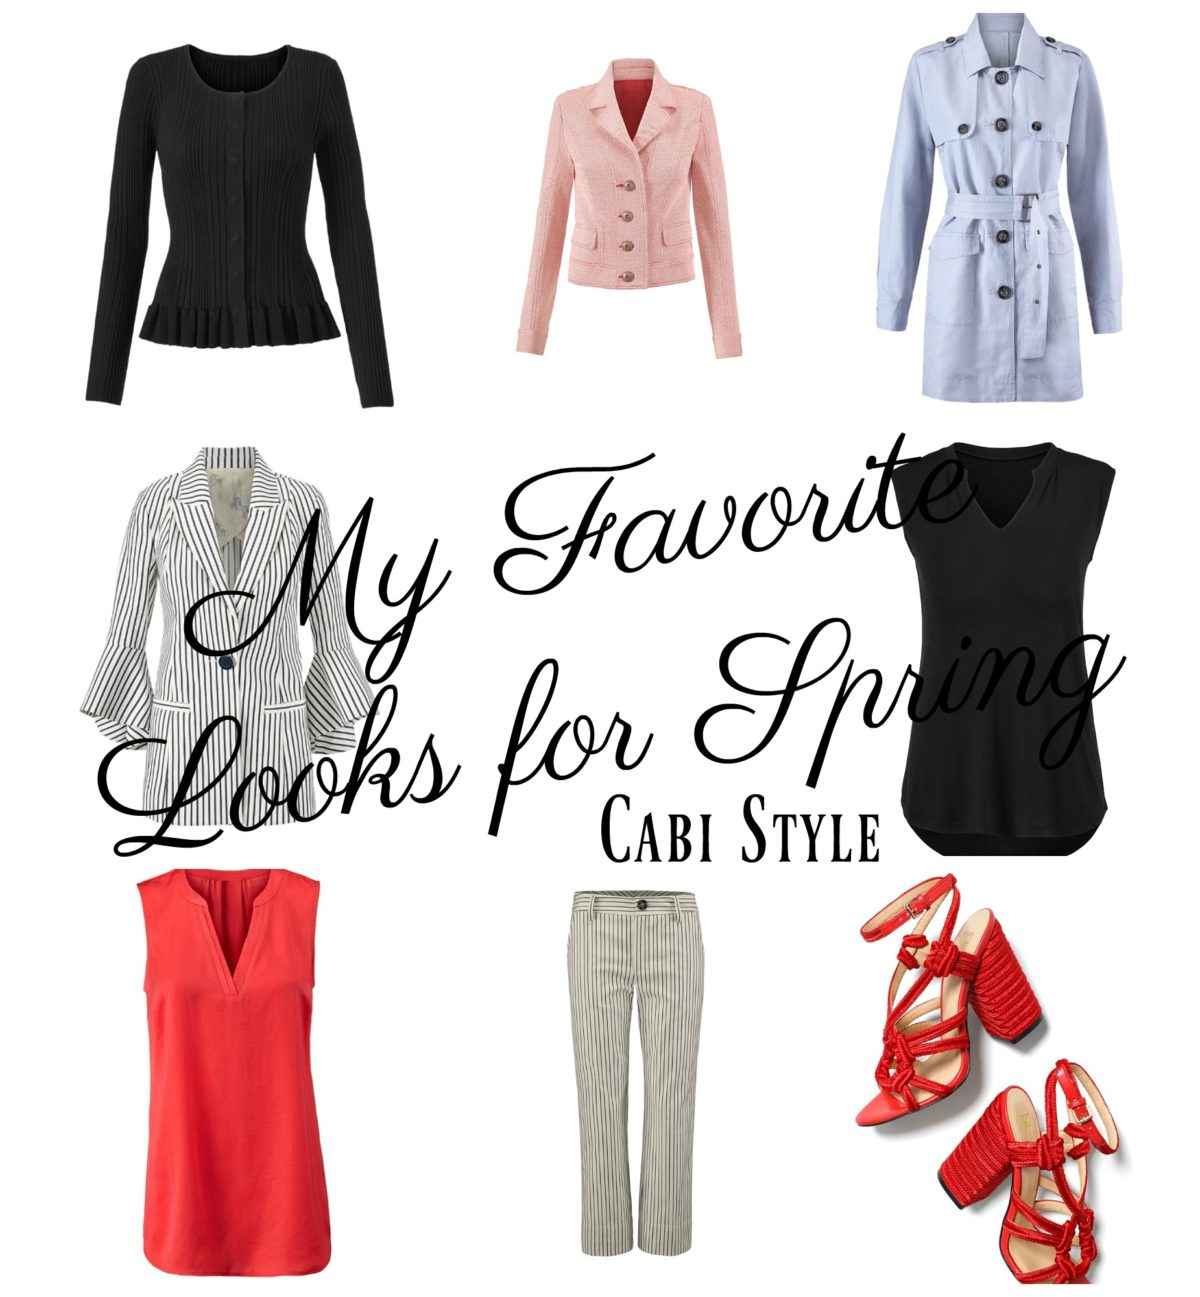 My Four Favorite Looks for Spring:  Cabi Style